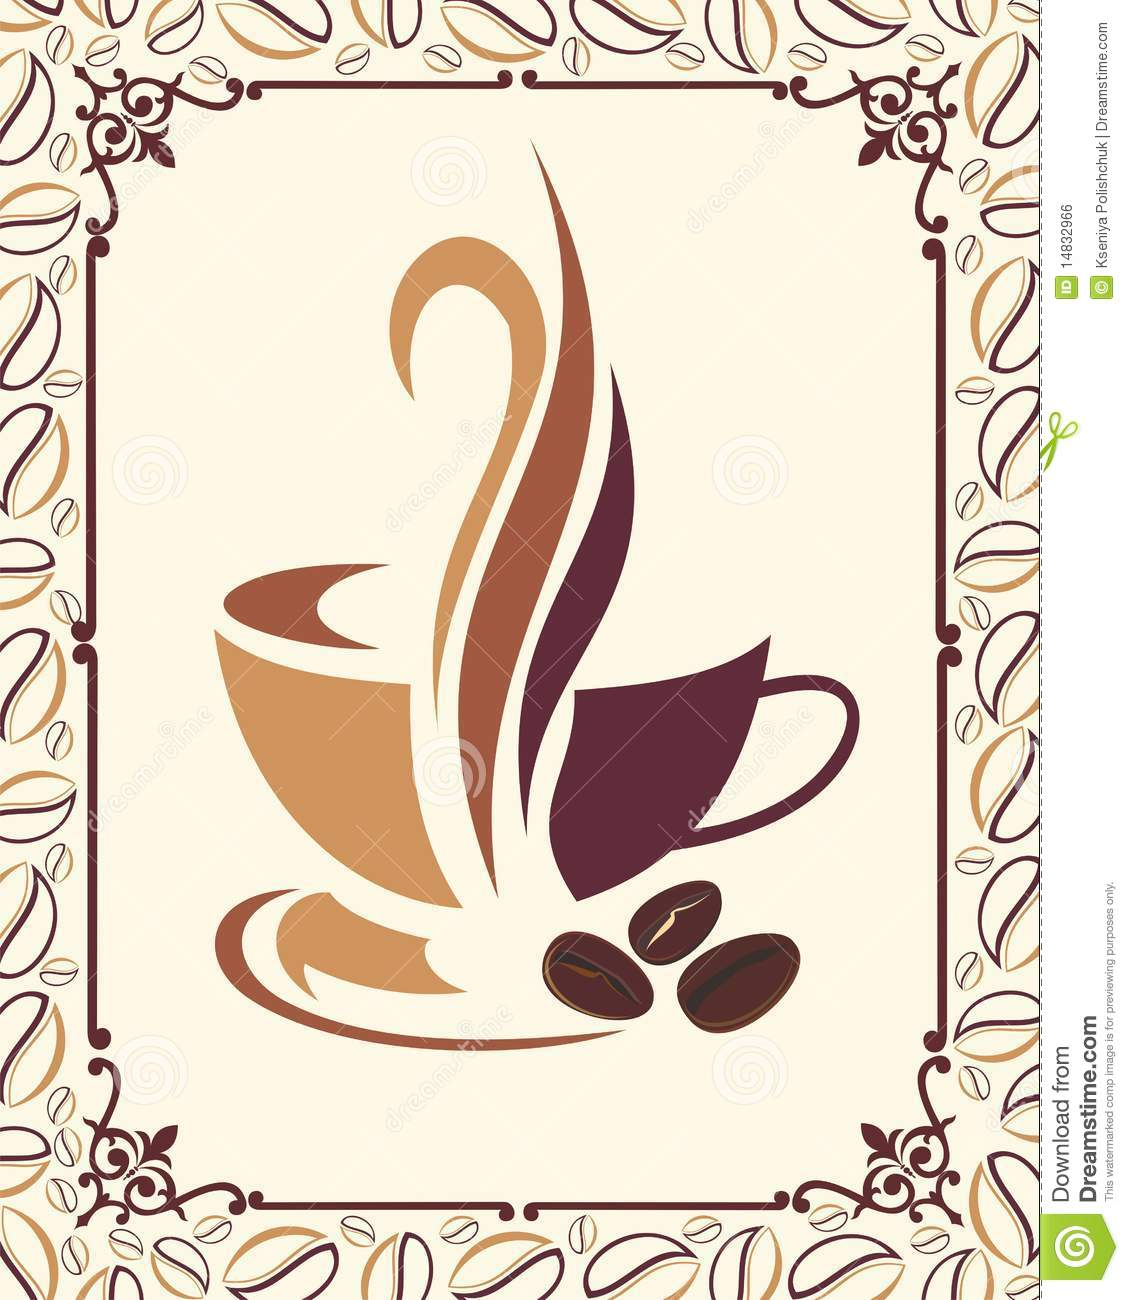 Coffee Design With Beans Frame Stock Vector - Illustration of ...